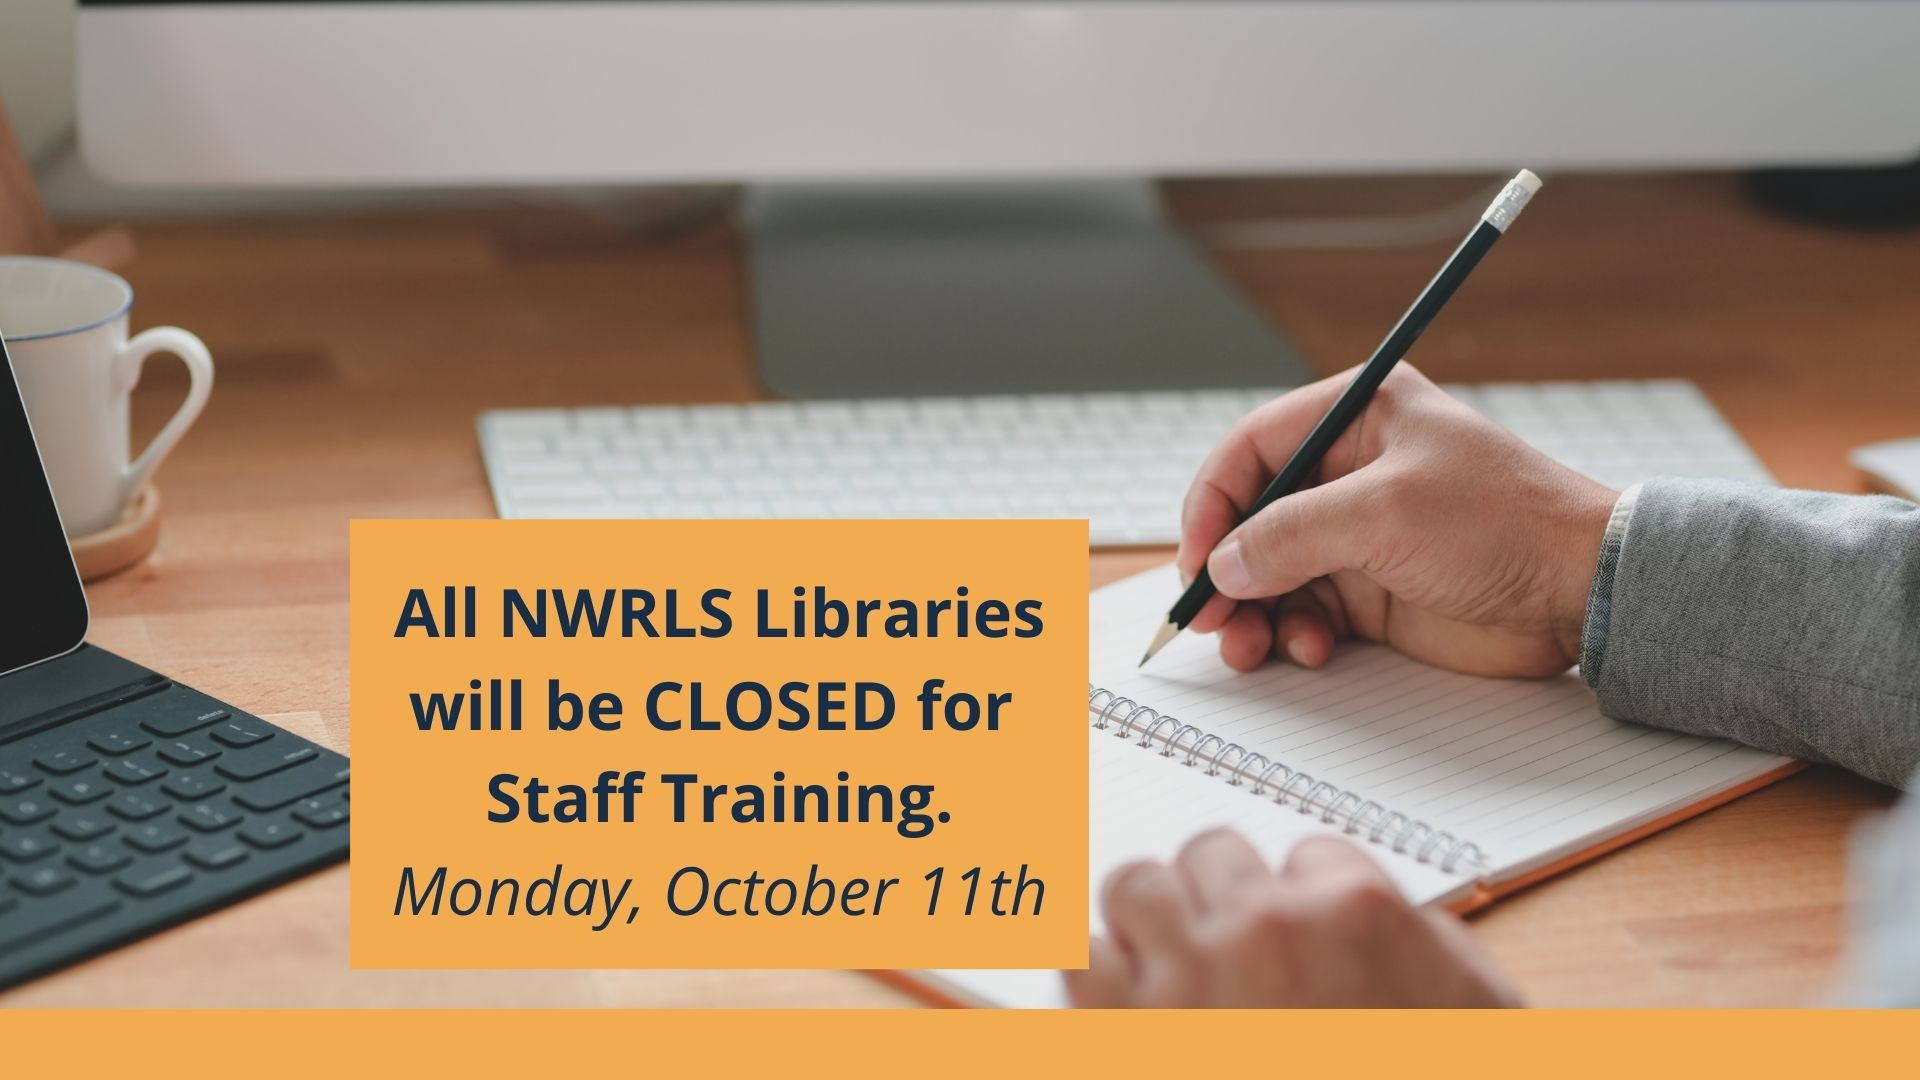 Locations closed for Staff Training Day on October 11